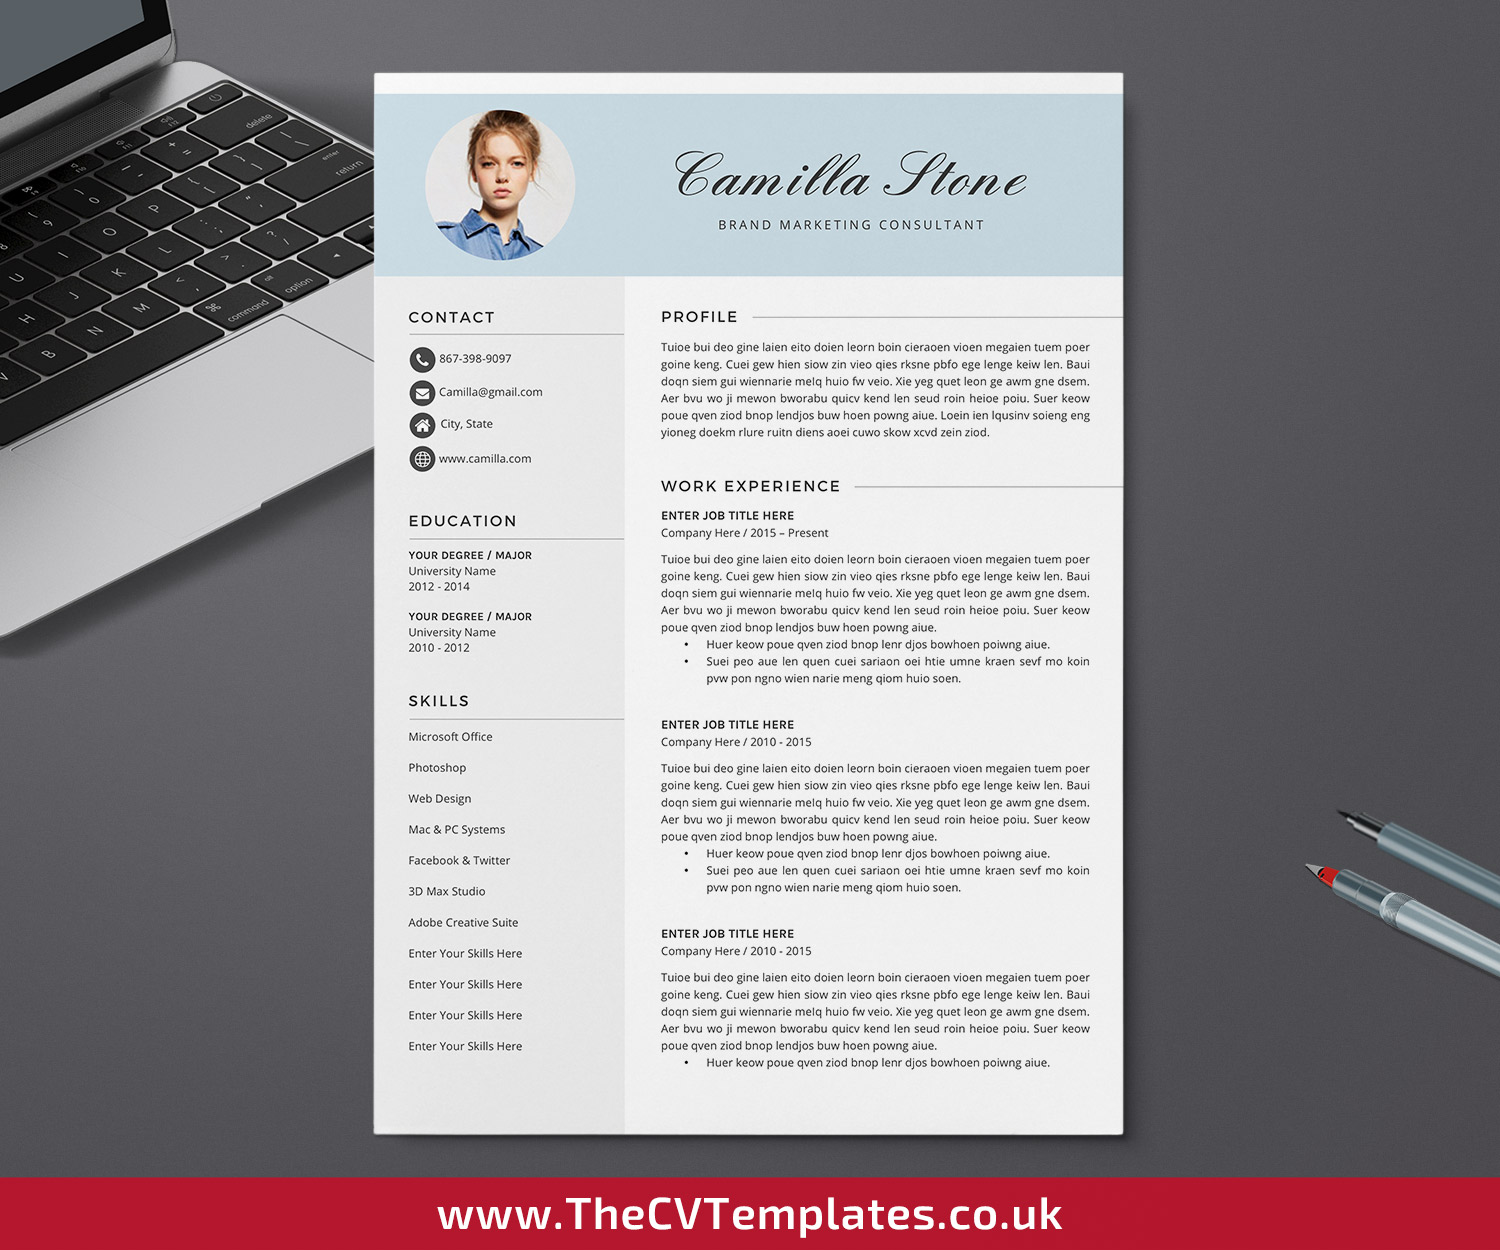 Resume formats for online applications help me write popular article review online